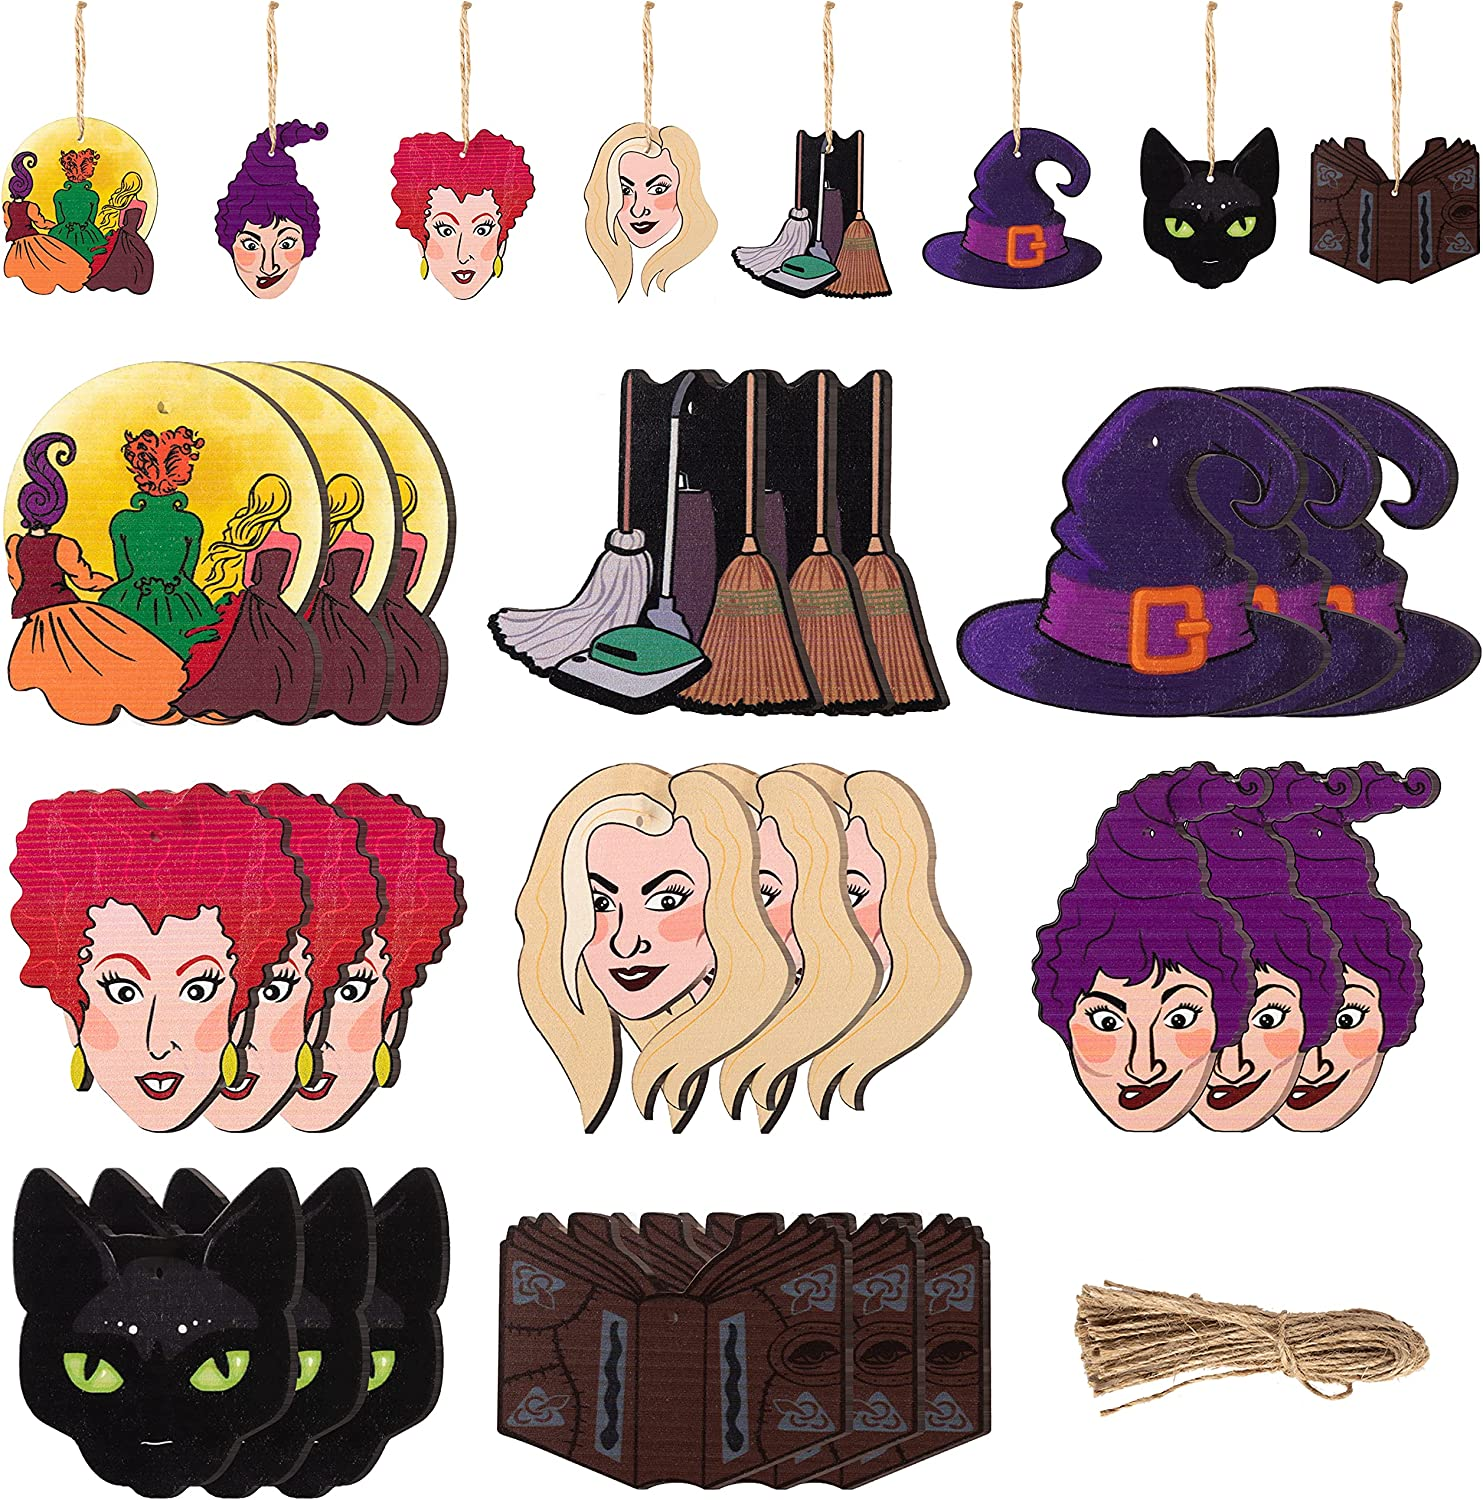 A1diee 24 Pcs Hocus Pocus Halloween Wooden Hanging Ornaments Witch Hat Black Cat I Smell Children Witch Wood Slices Cutouts with Twine Rope for Trick or Treat Party Supplies Decor Pendant Hanging Tag